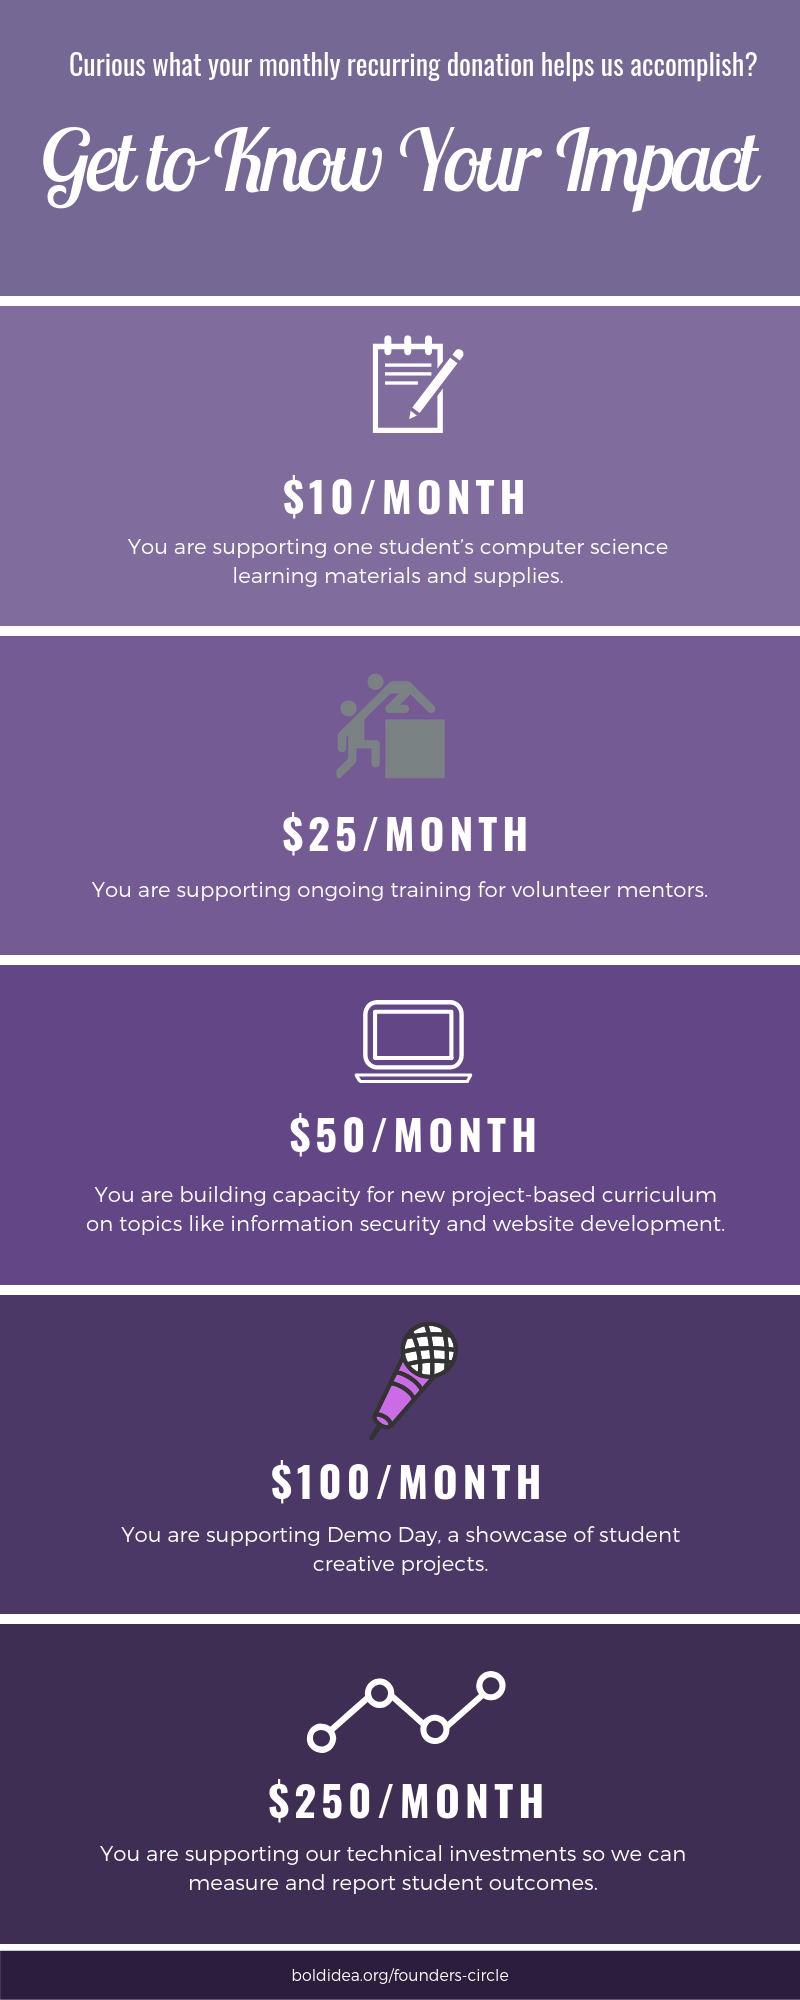 Get to Know Your Impact (1).png